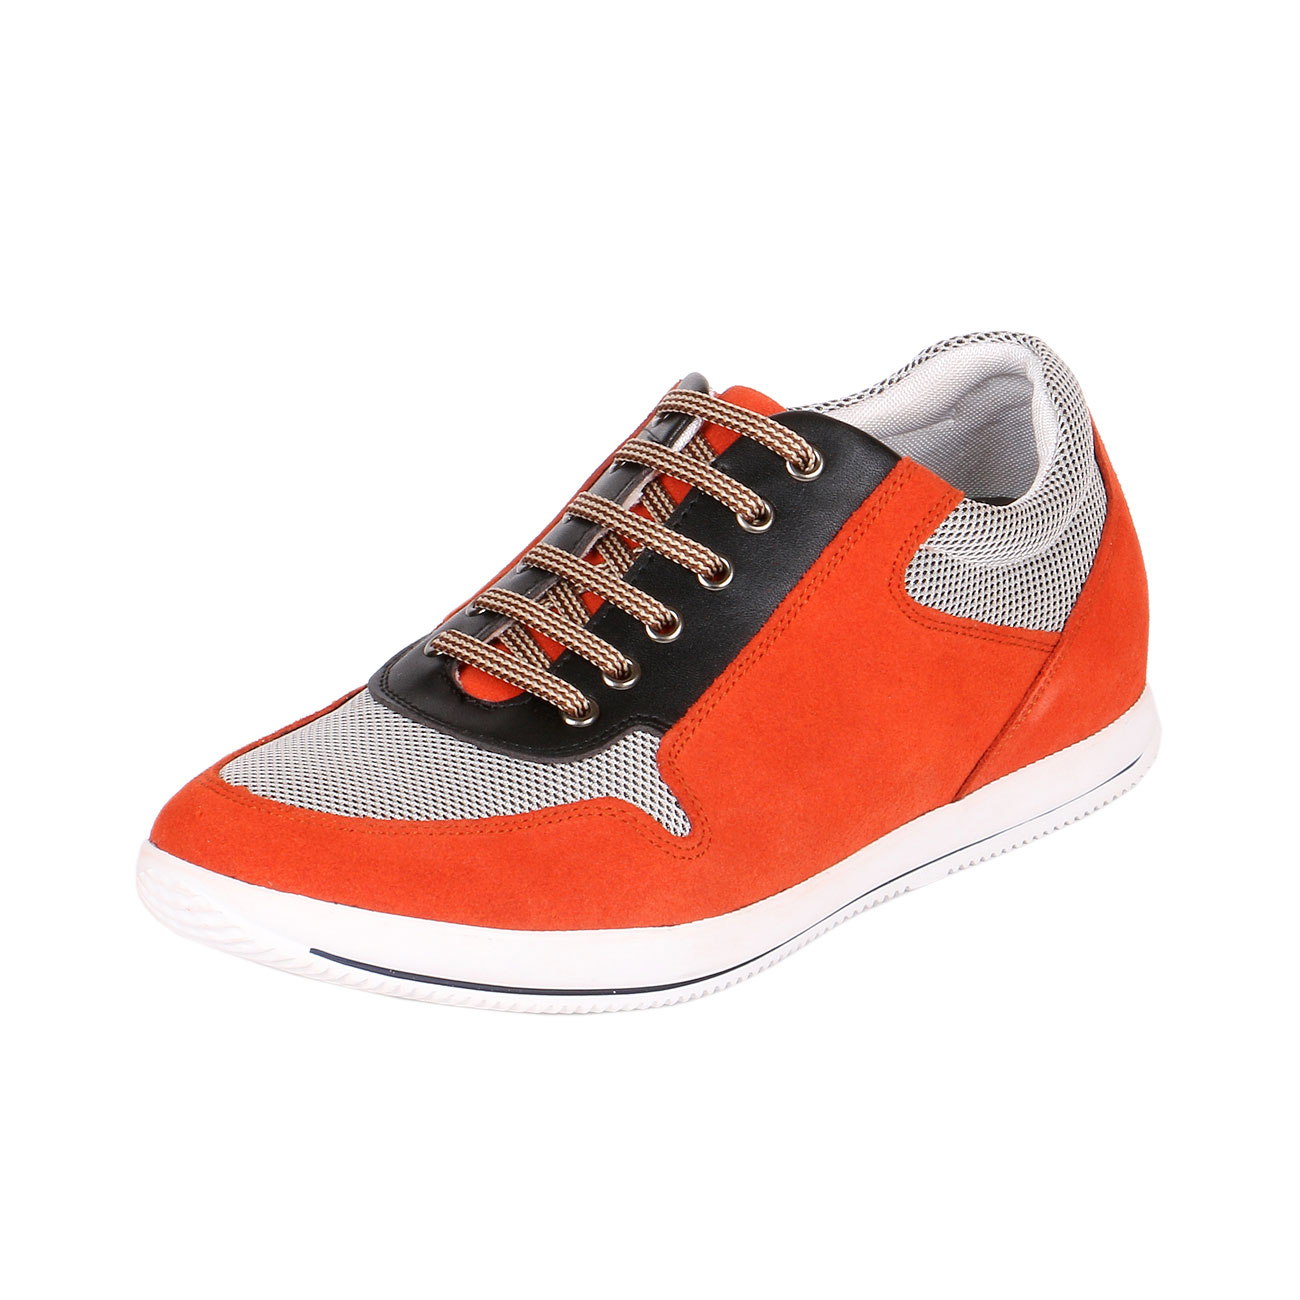 Men's Sneakers for Height-view1